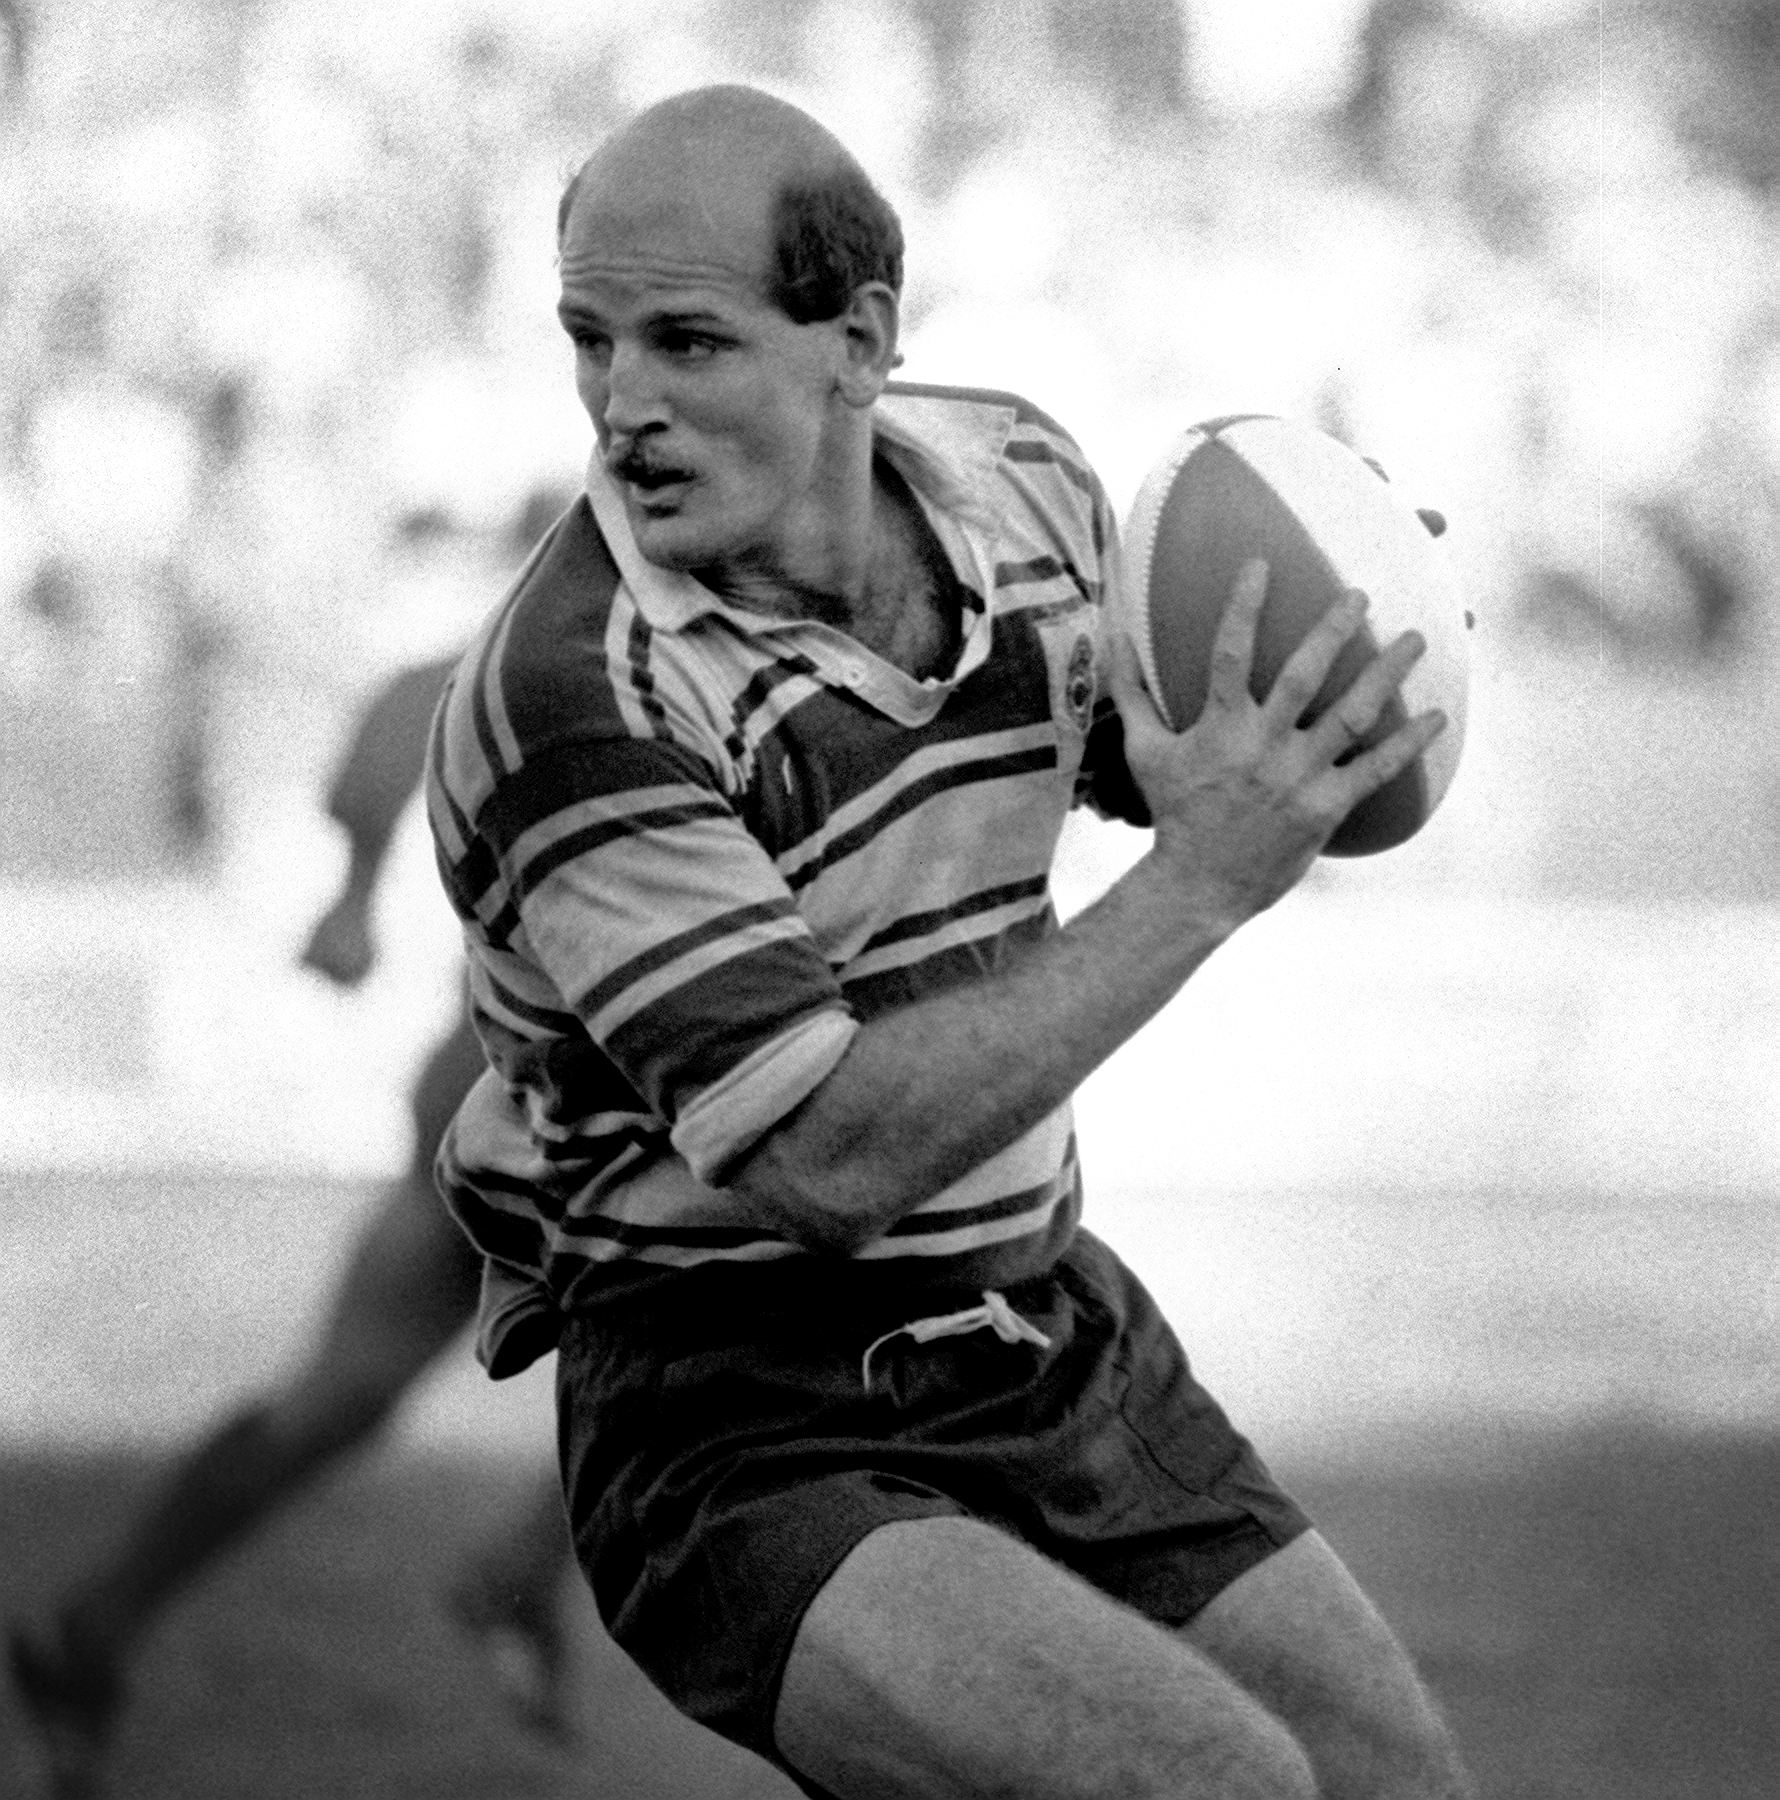 Tony Shaw in action for Brothers.